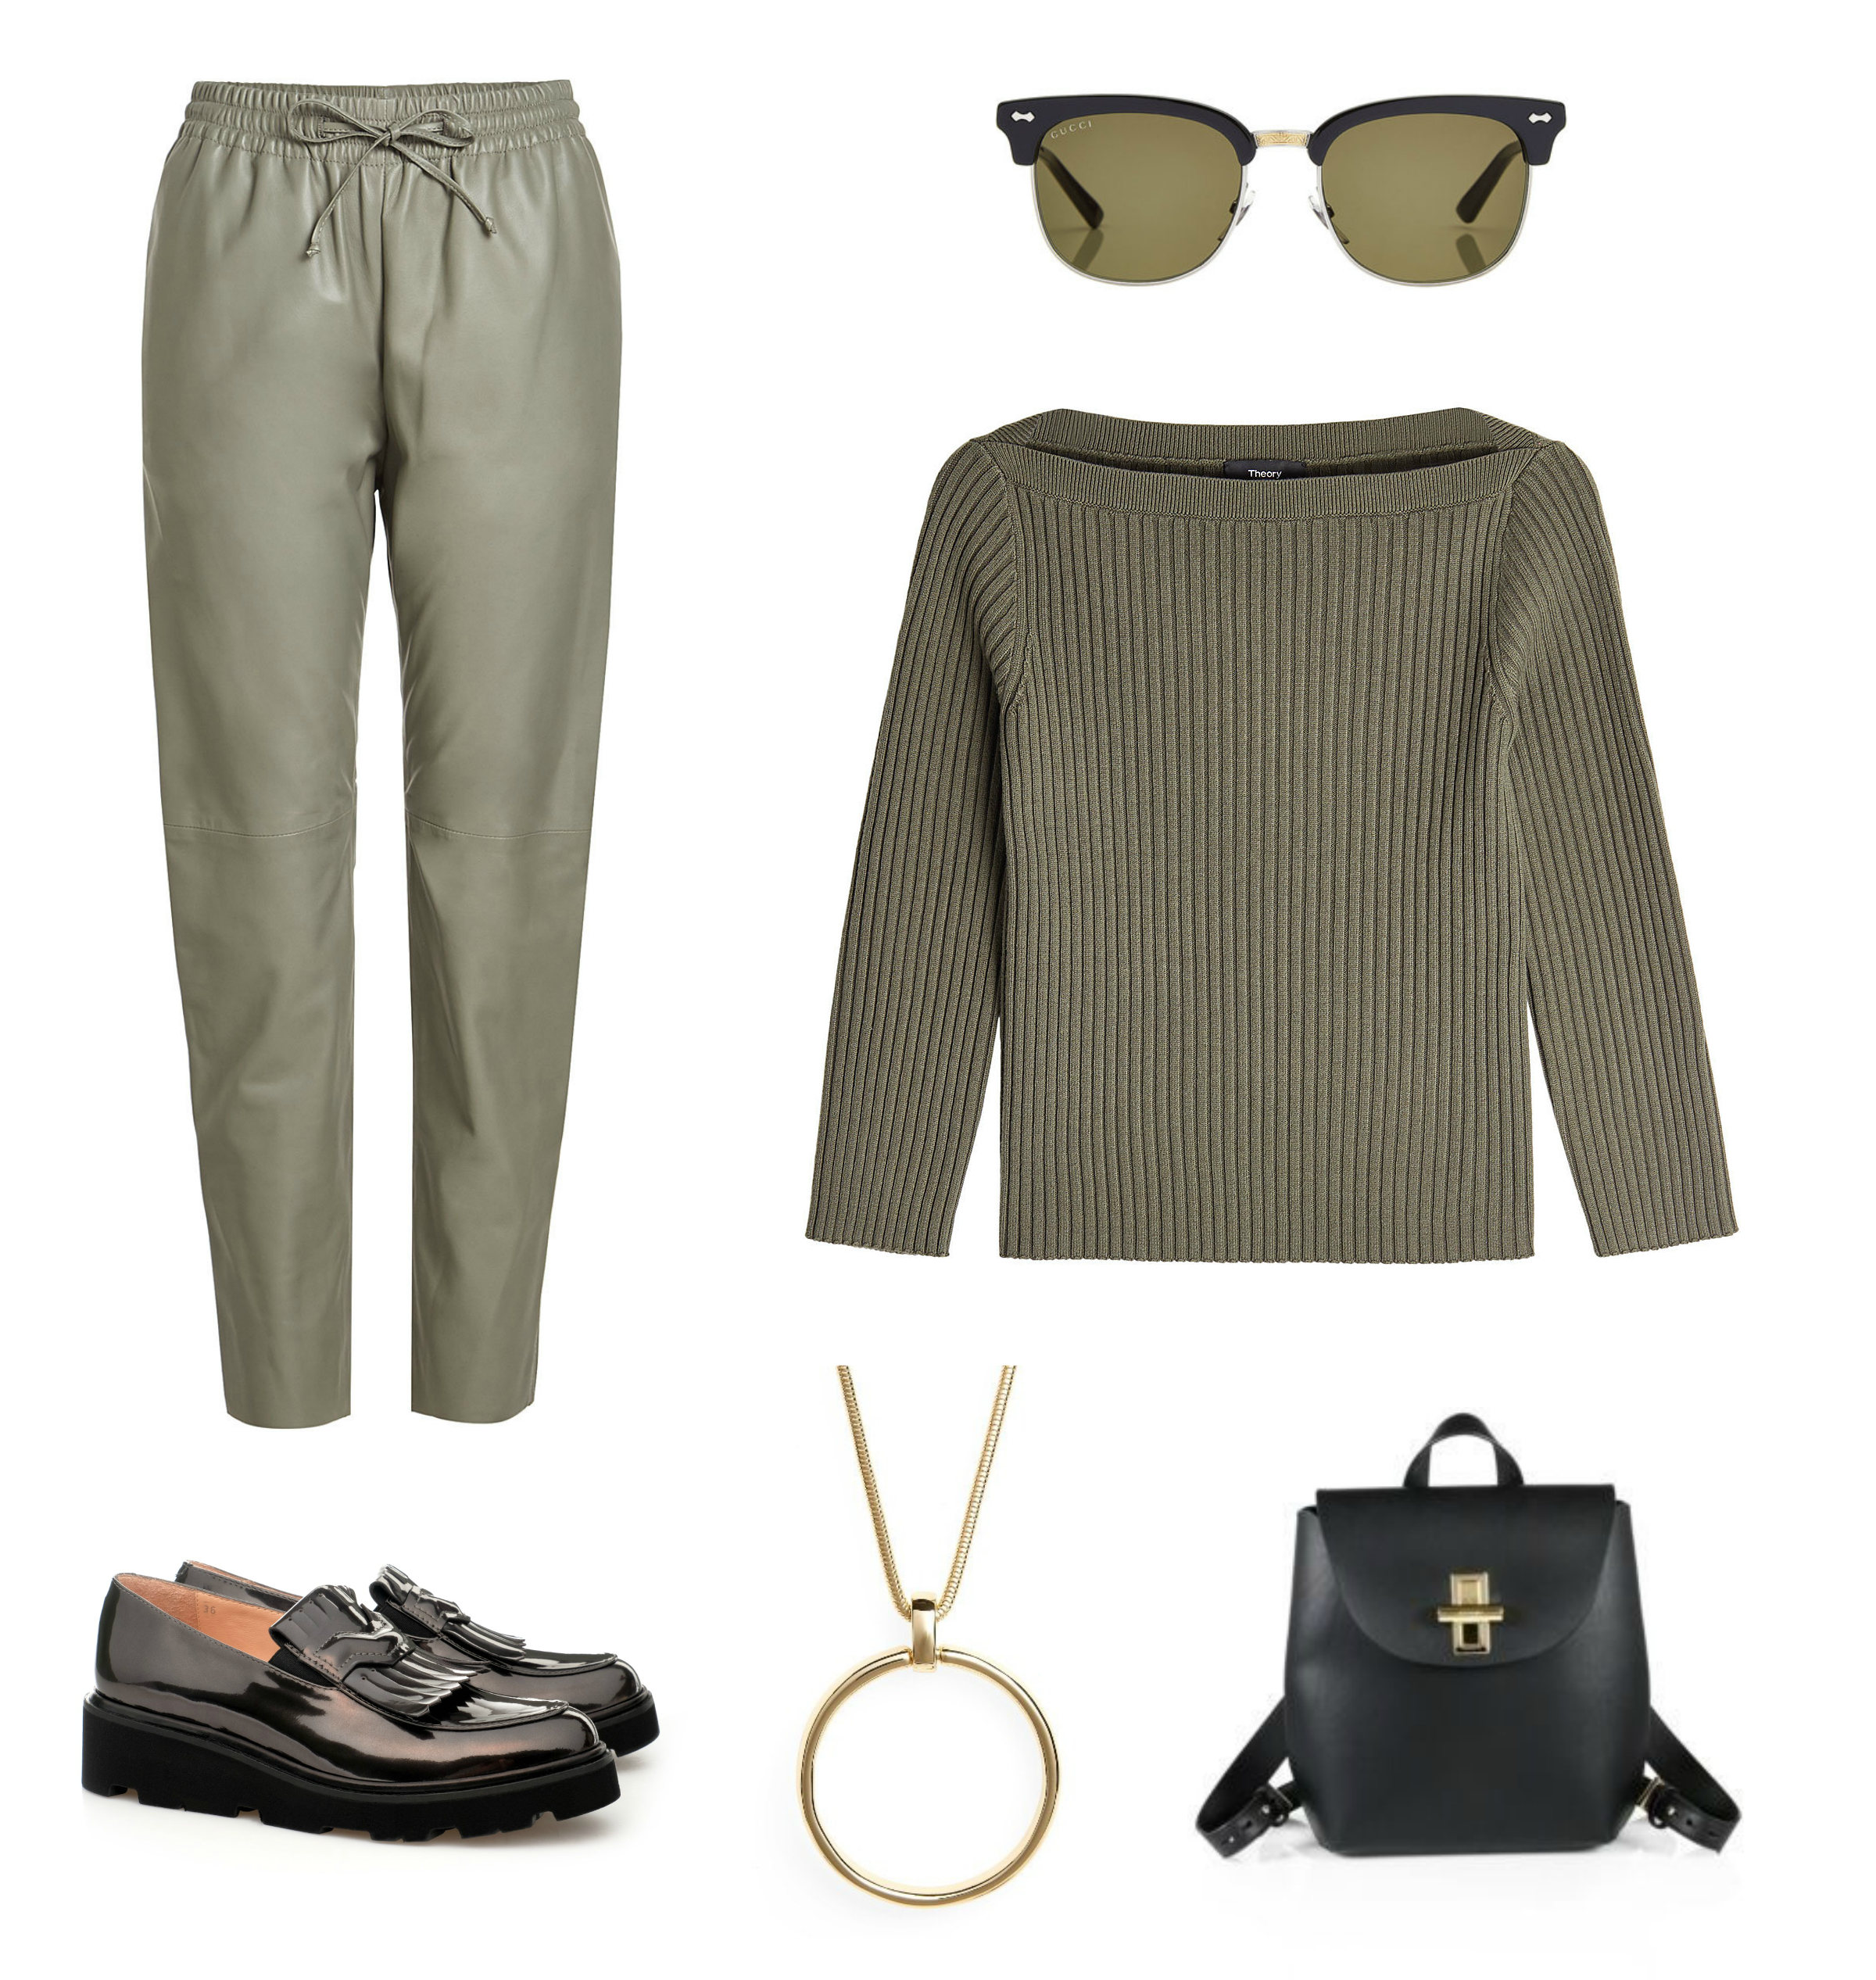 Comfy and classy at the same time.  #stylishdressing #gucci #musette #leatherpants #comfy #classy #casual #casualoutfit #simpleissexy